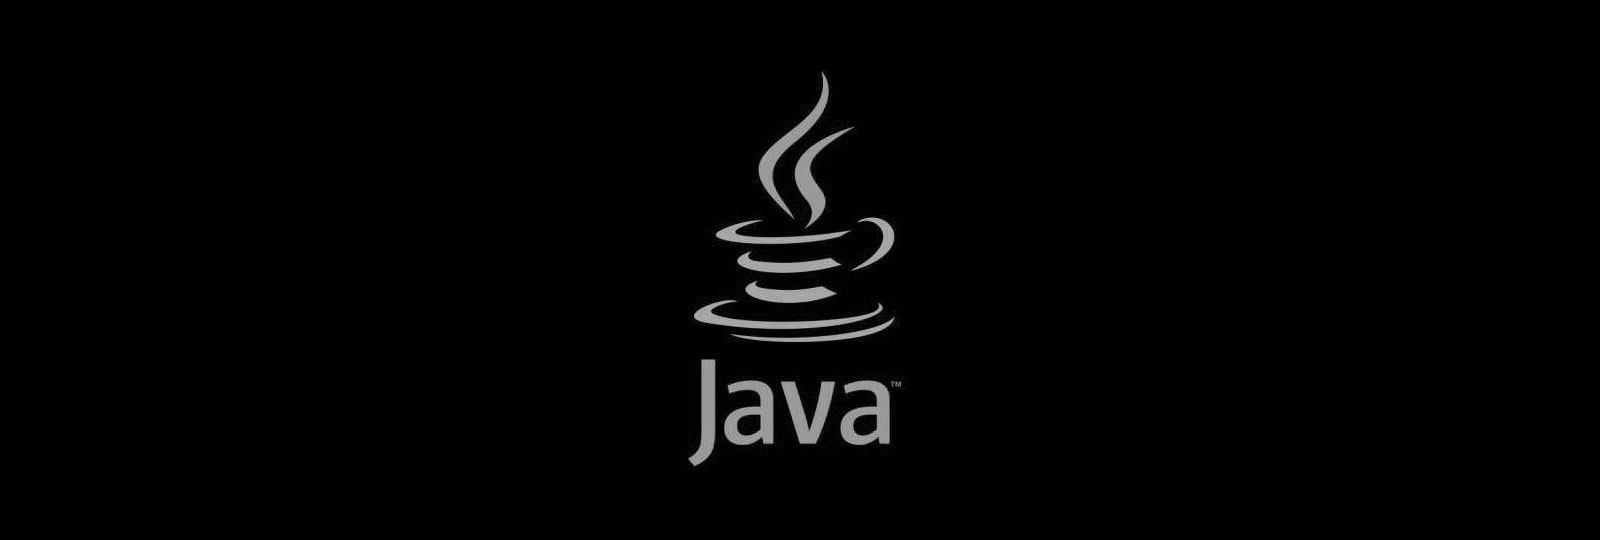 what-is-java-used-for.jpg